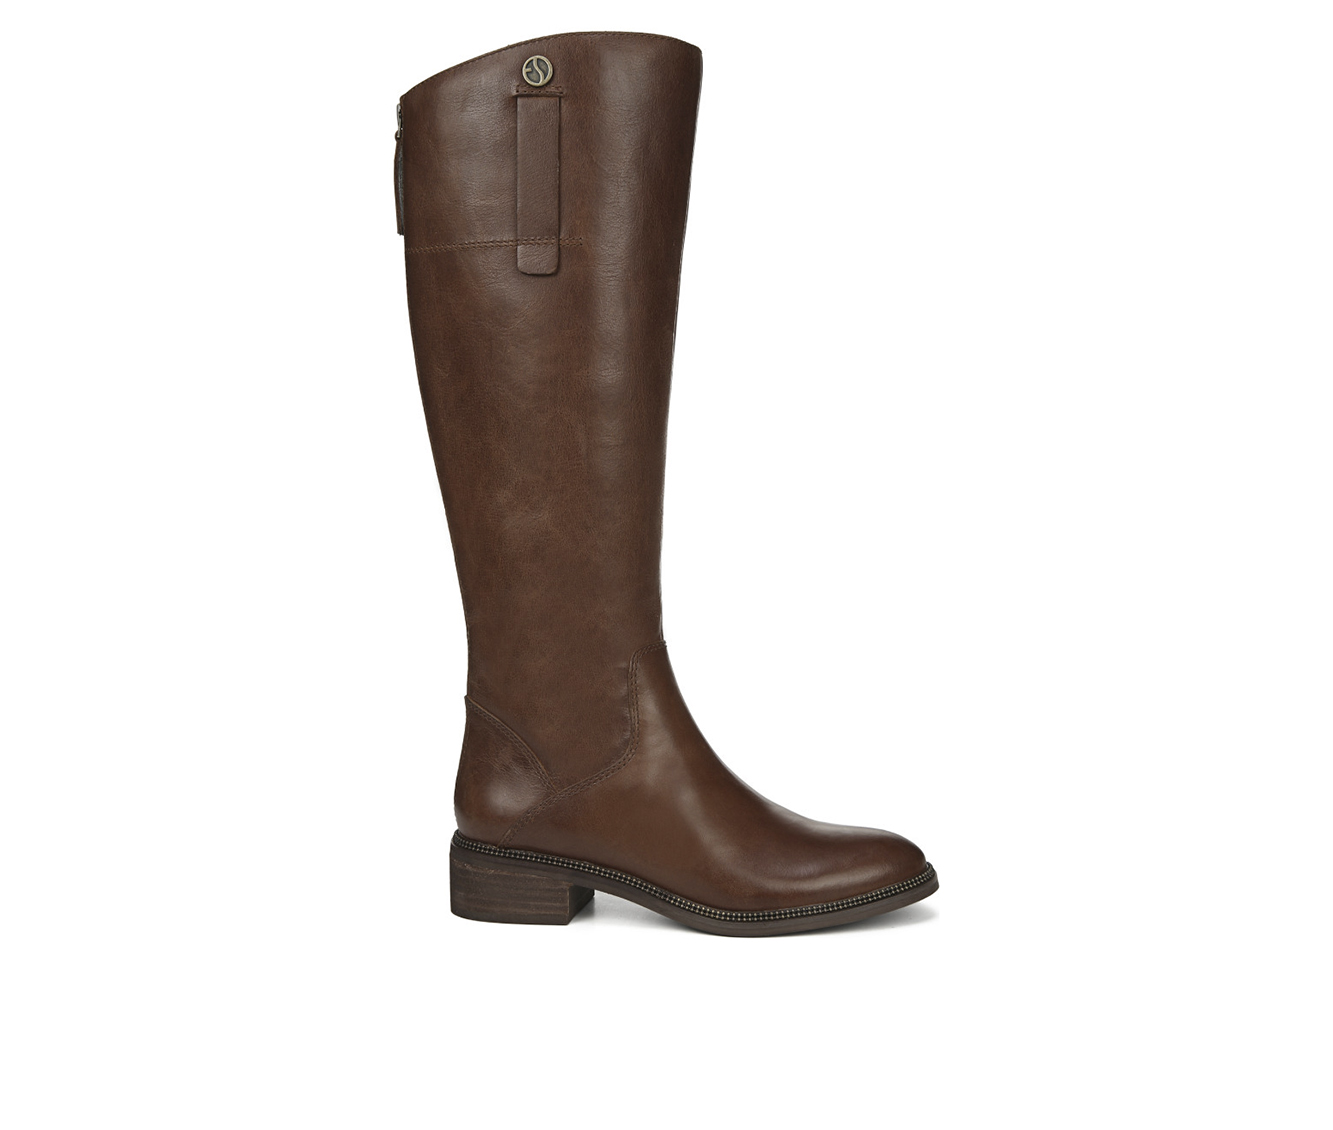 Franco Sarto Becky Women's Boots (Brown - Leather)